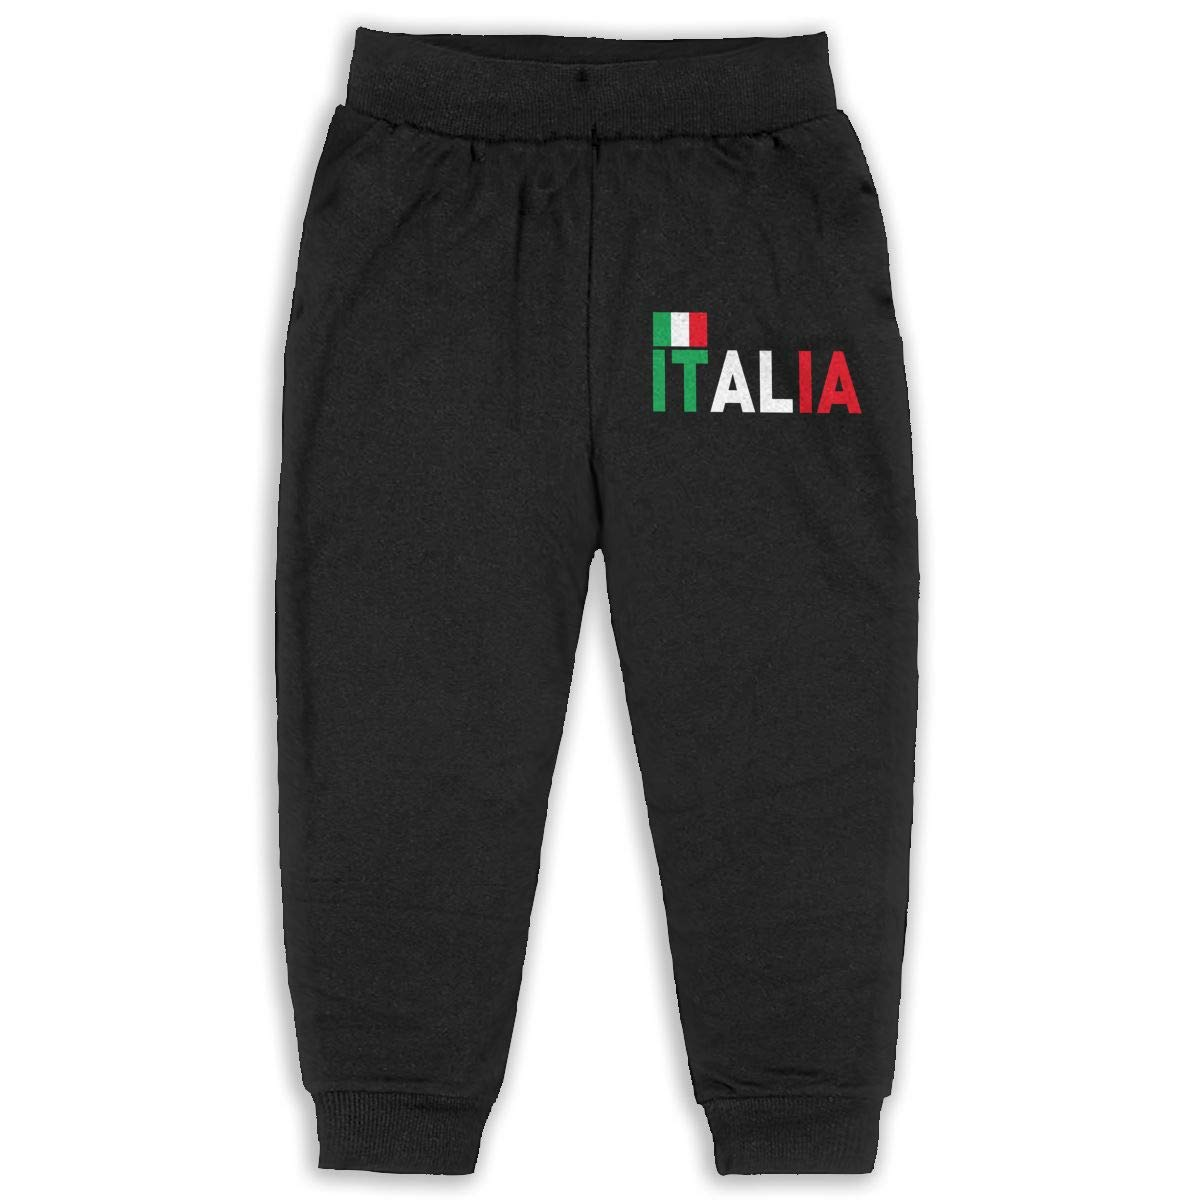 6T EASON-G Kids Joggers Italian Flag Fashion Sweatpants 2T